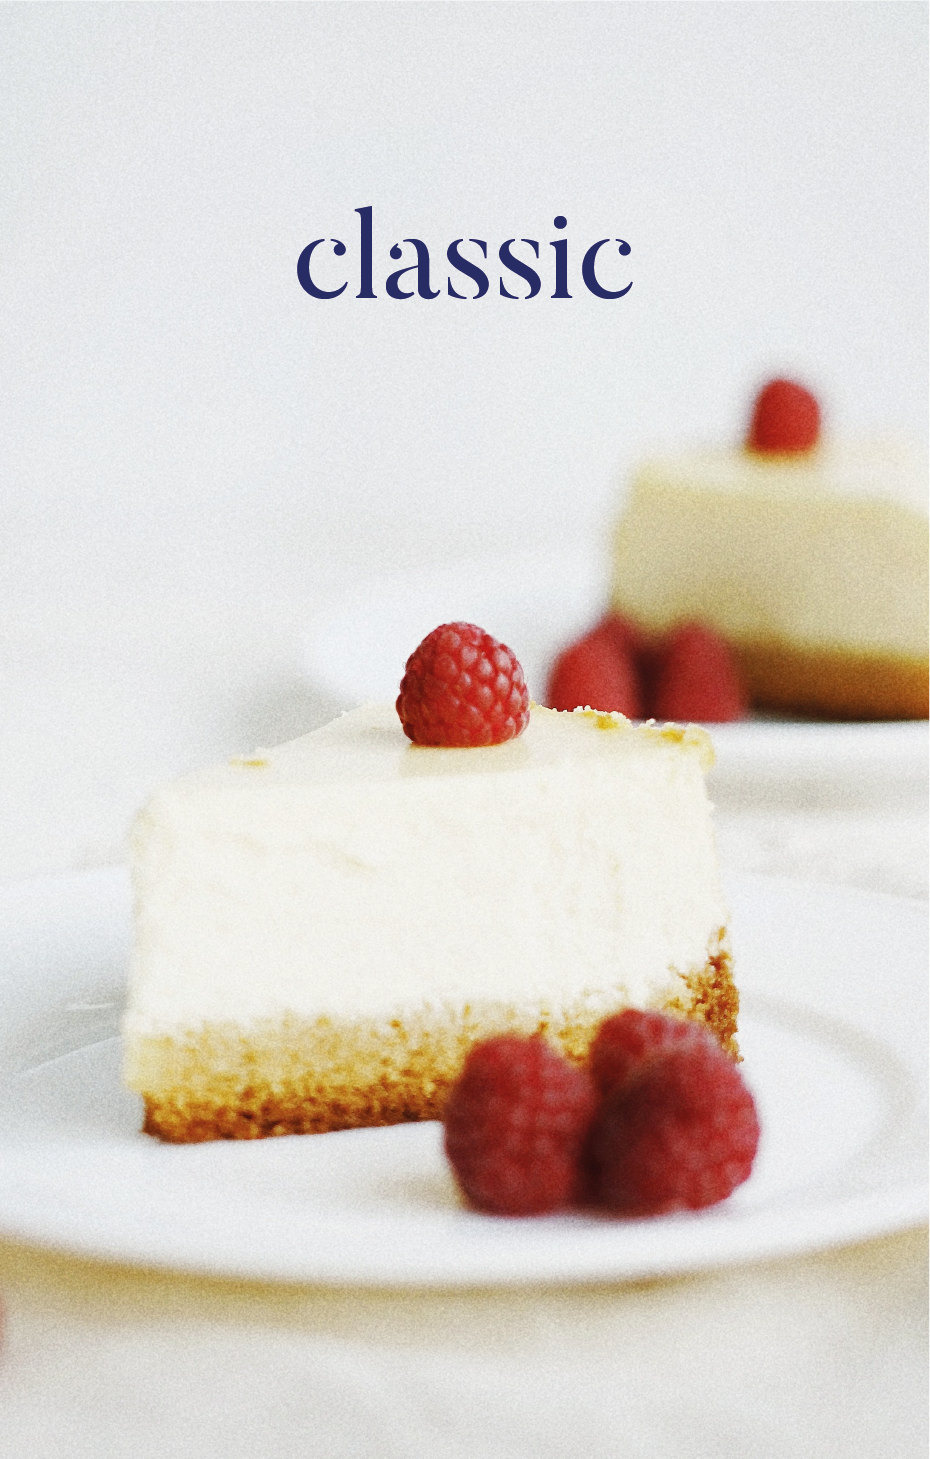 Classic Cakes | Cake Together Plus